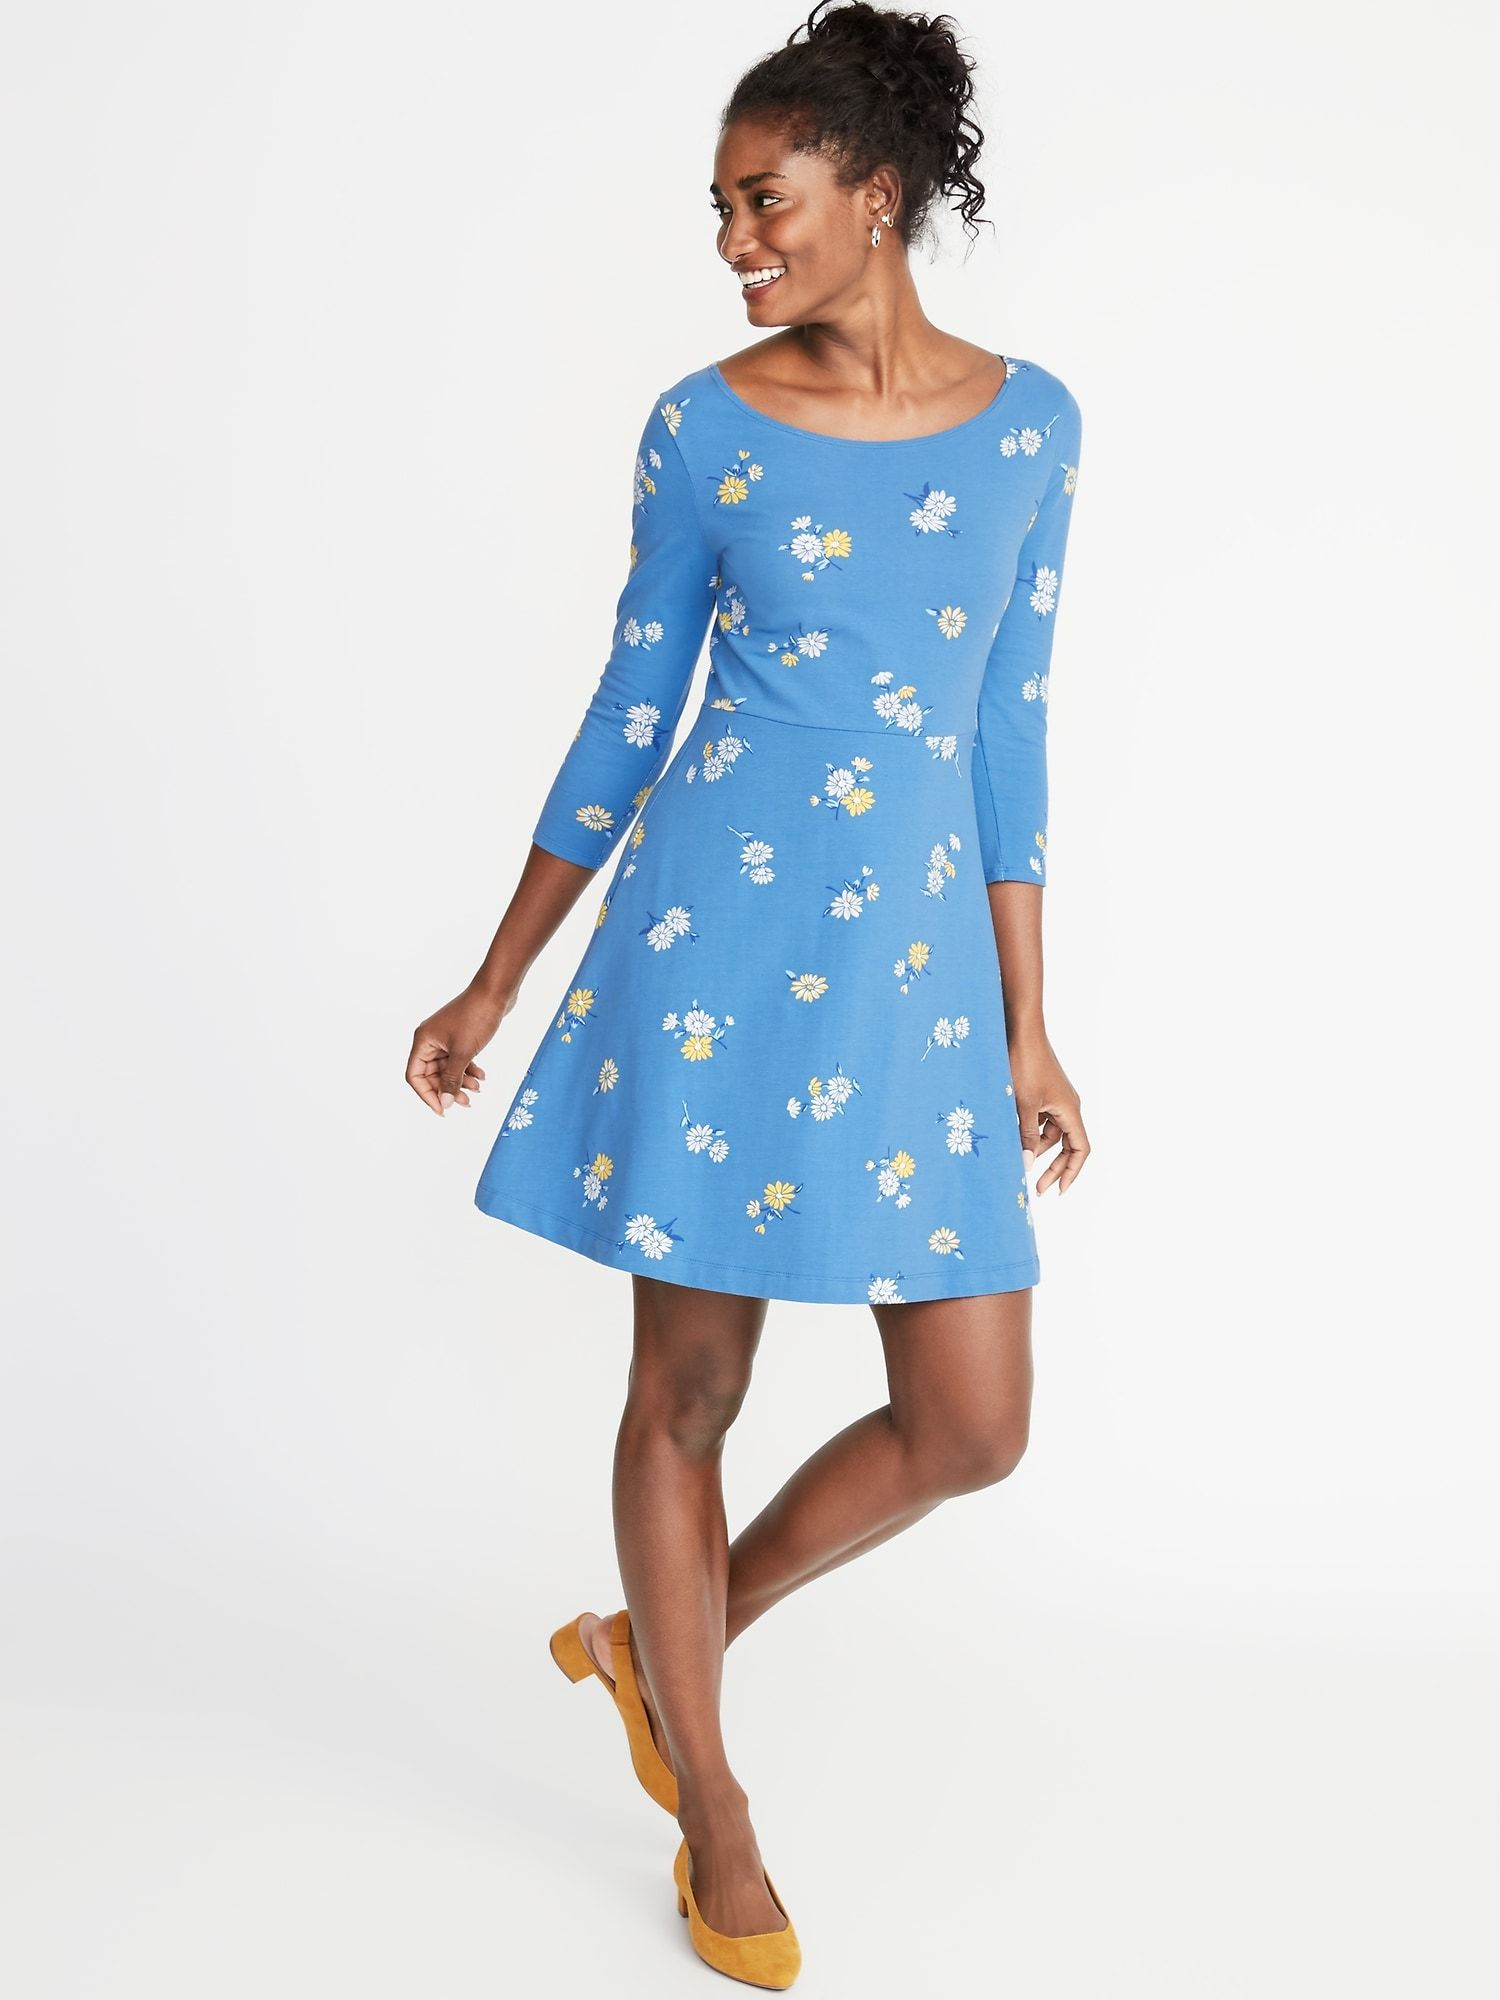 Fit & Flare 3/4-Sleeve Jersey Dress for Women   Old Navy ...